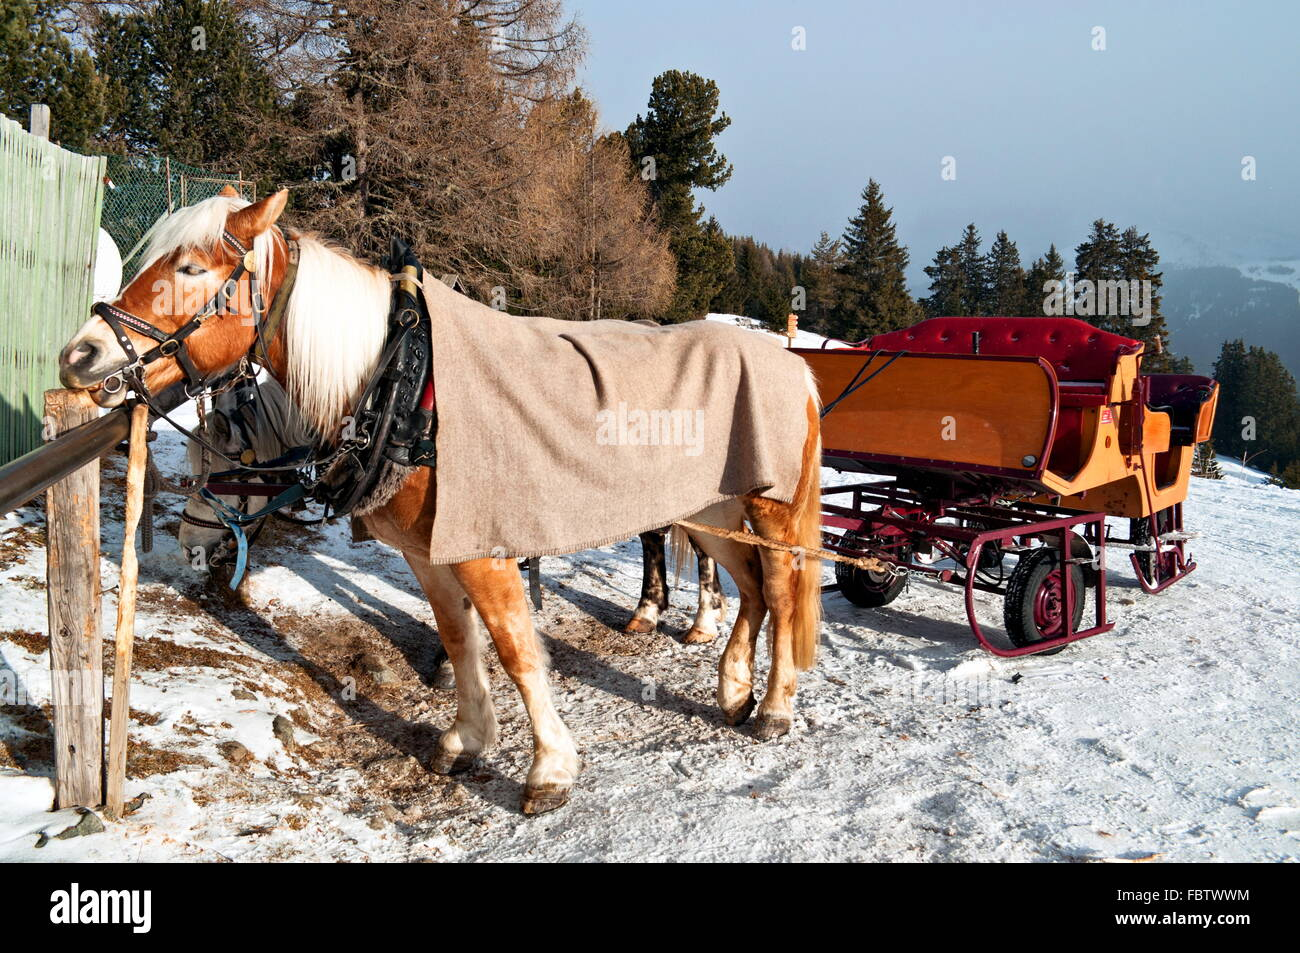 Horse Sledge in Dolomiti, Italy - Stock Image